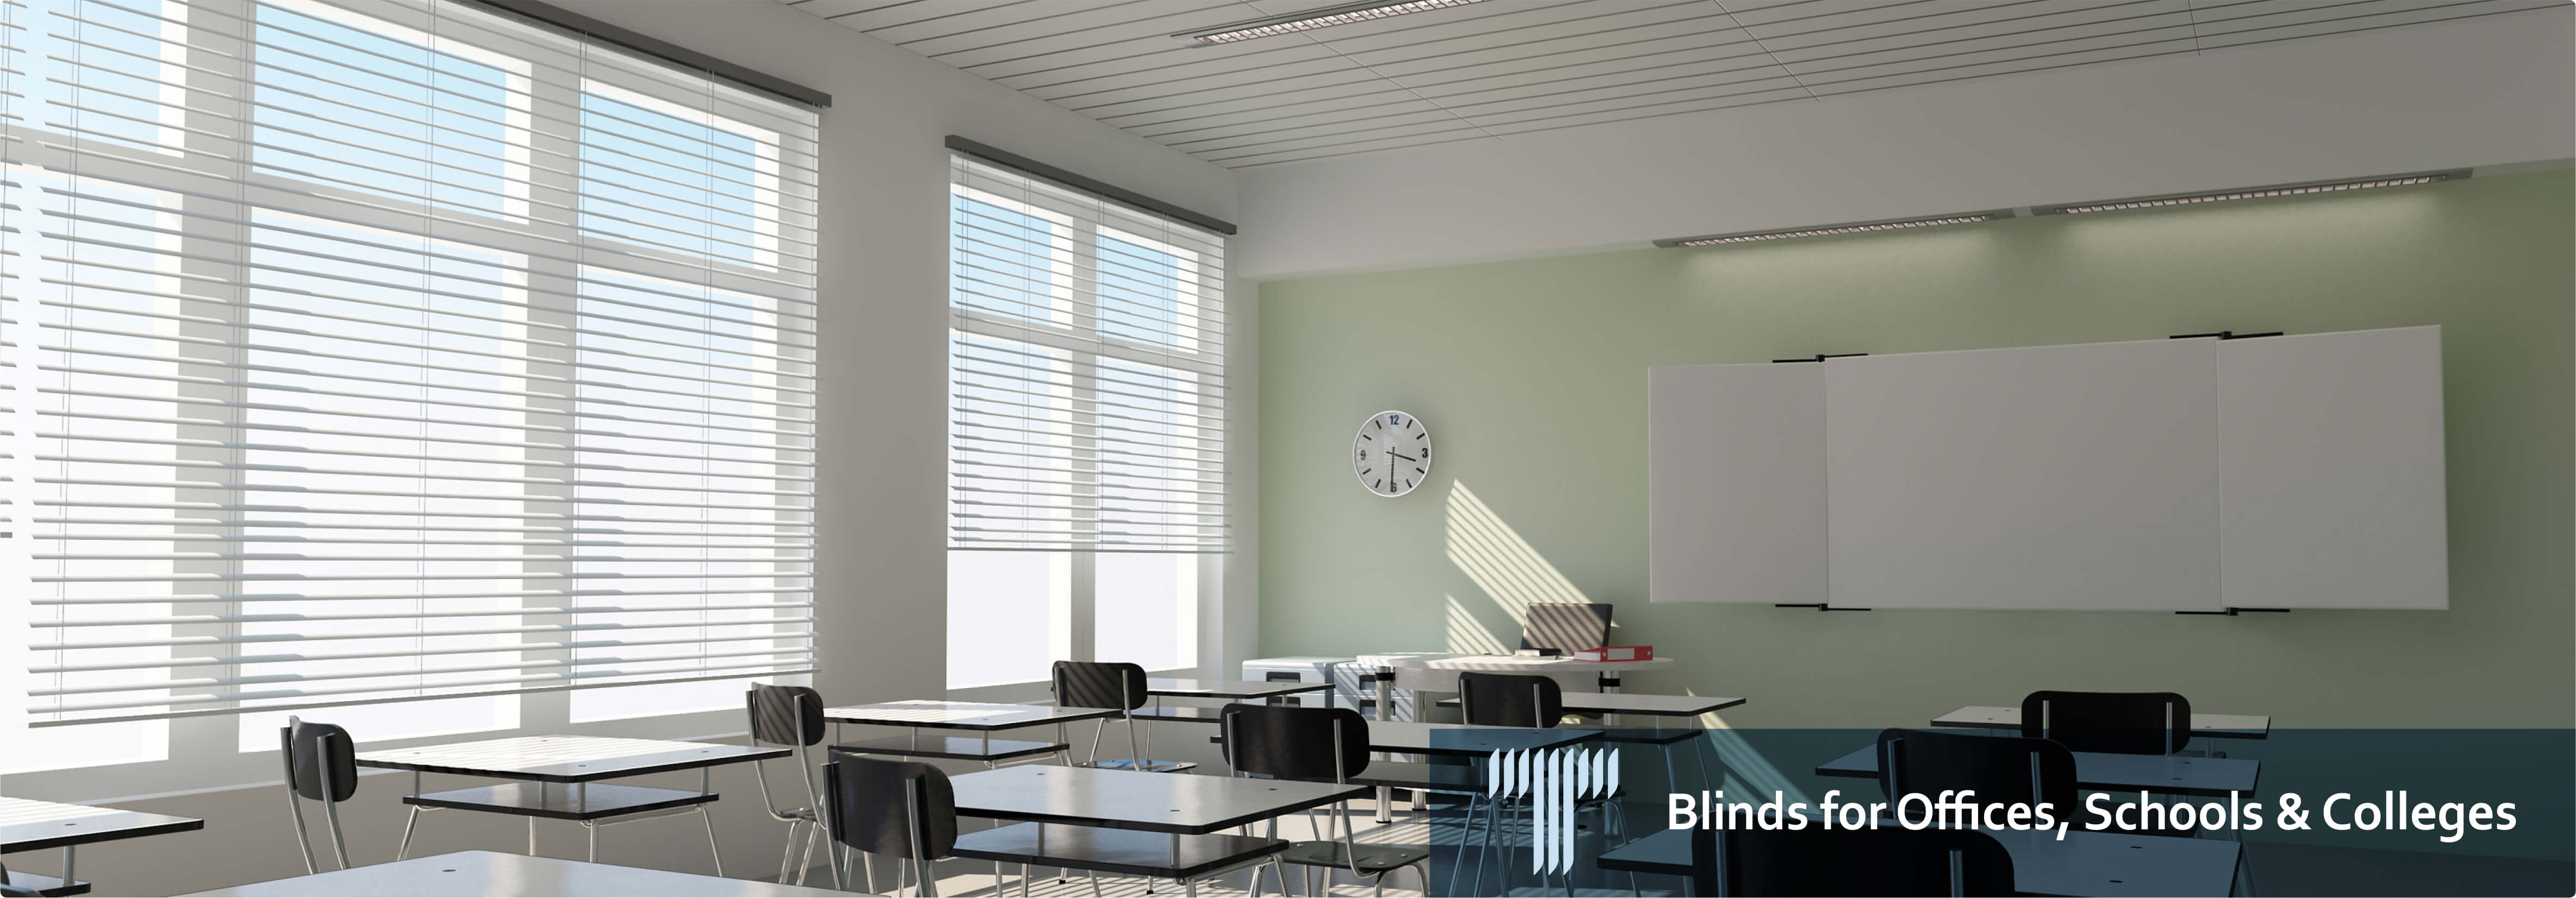 blinds for offices schools colleges in surrey techniblinds ltd